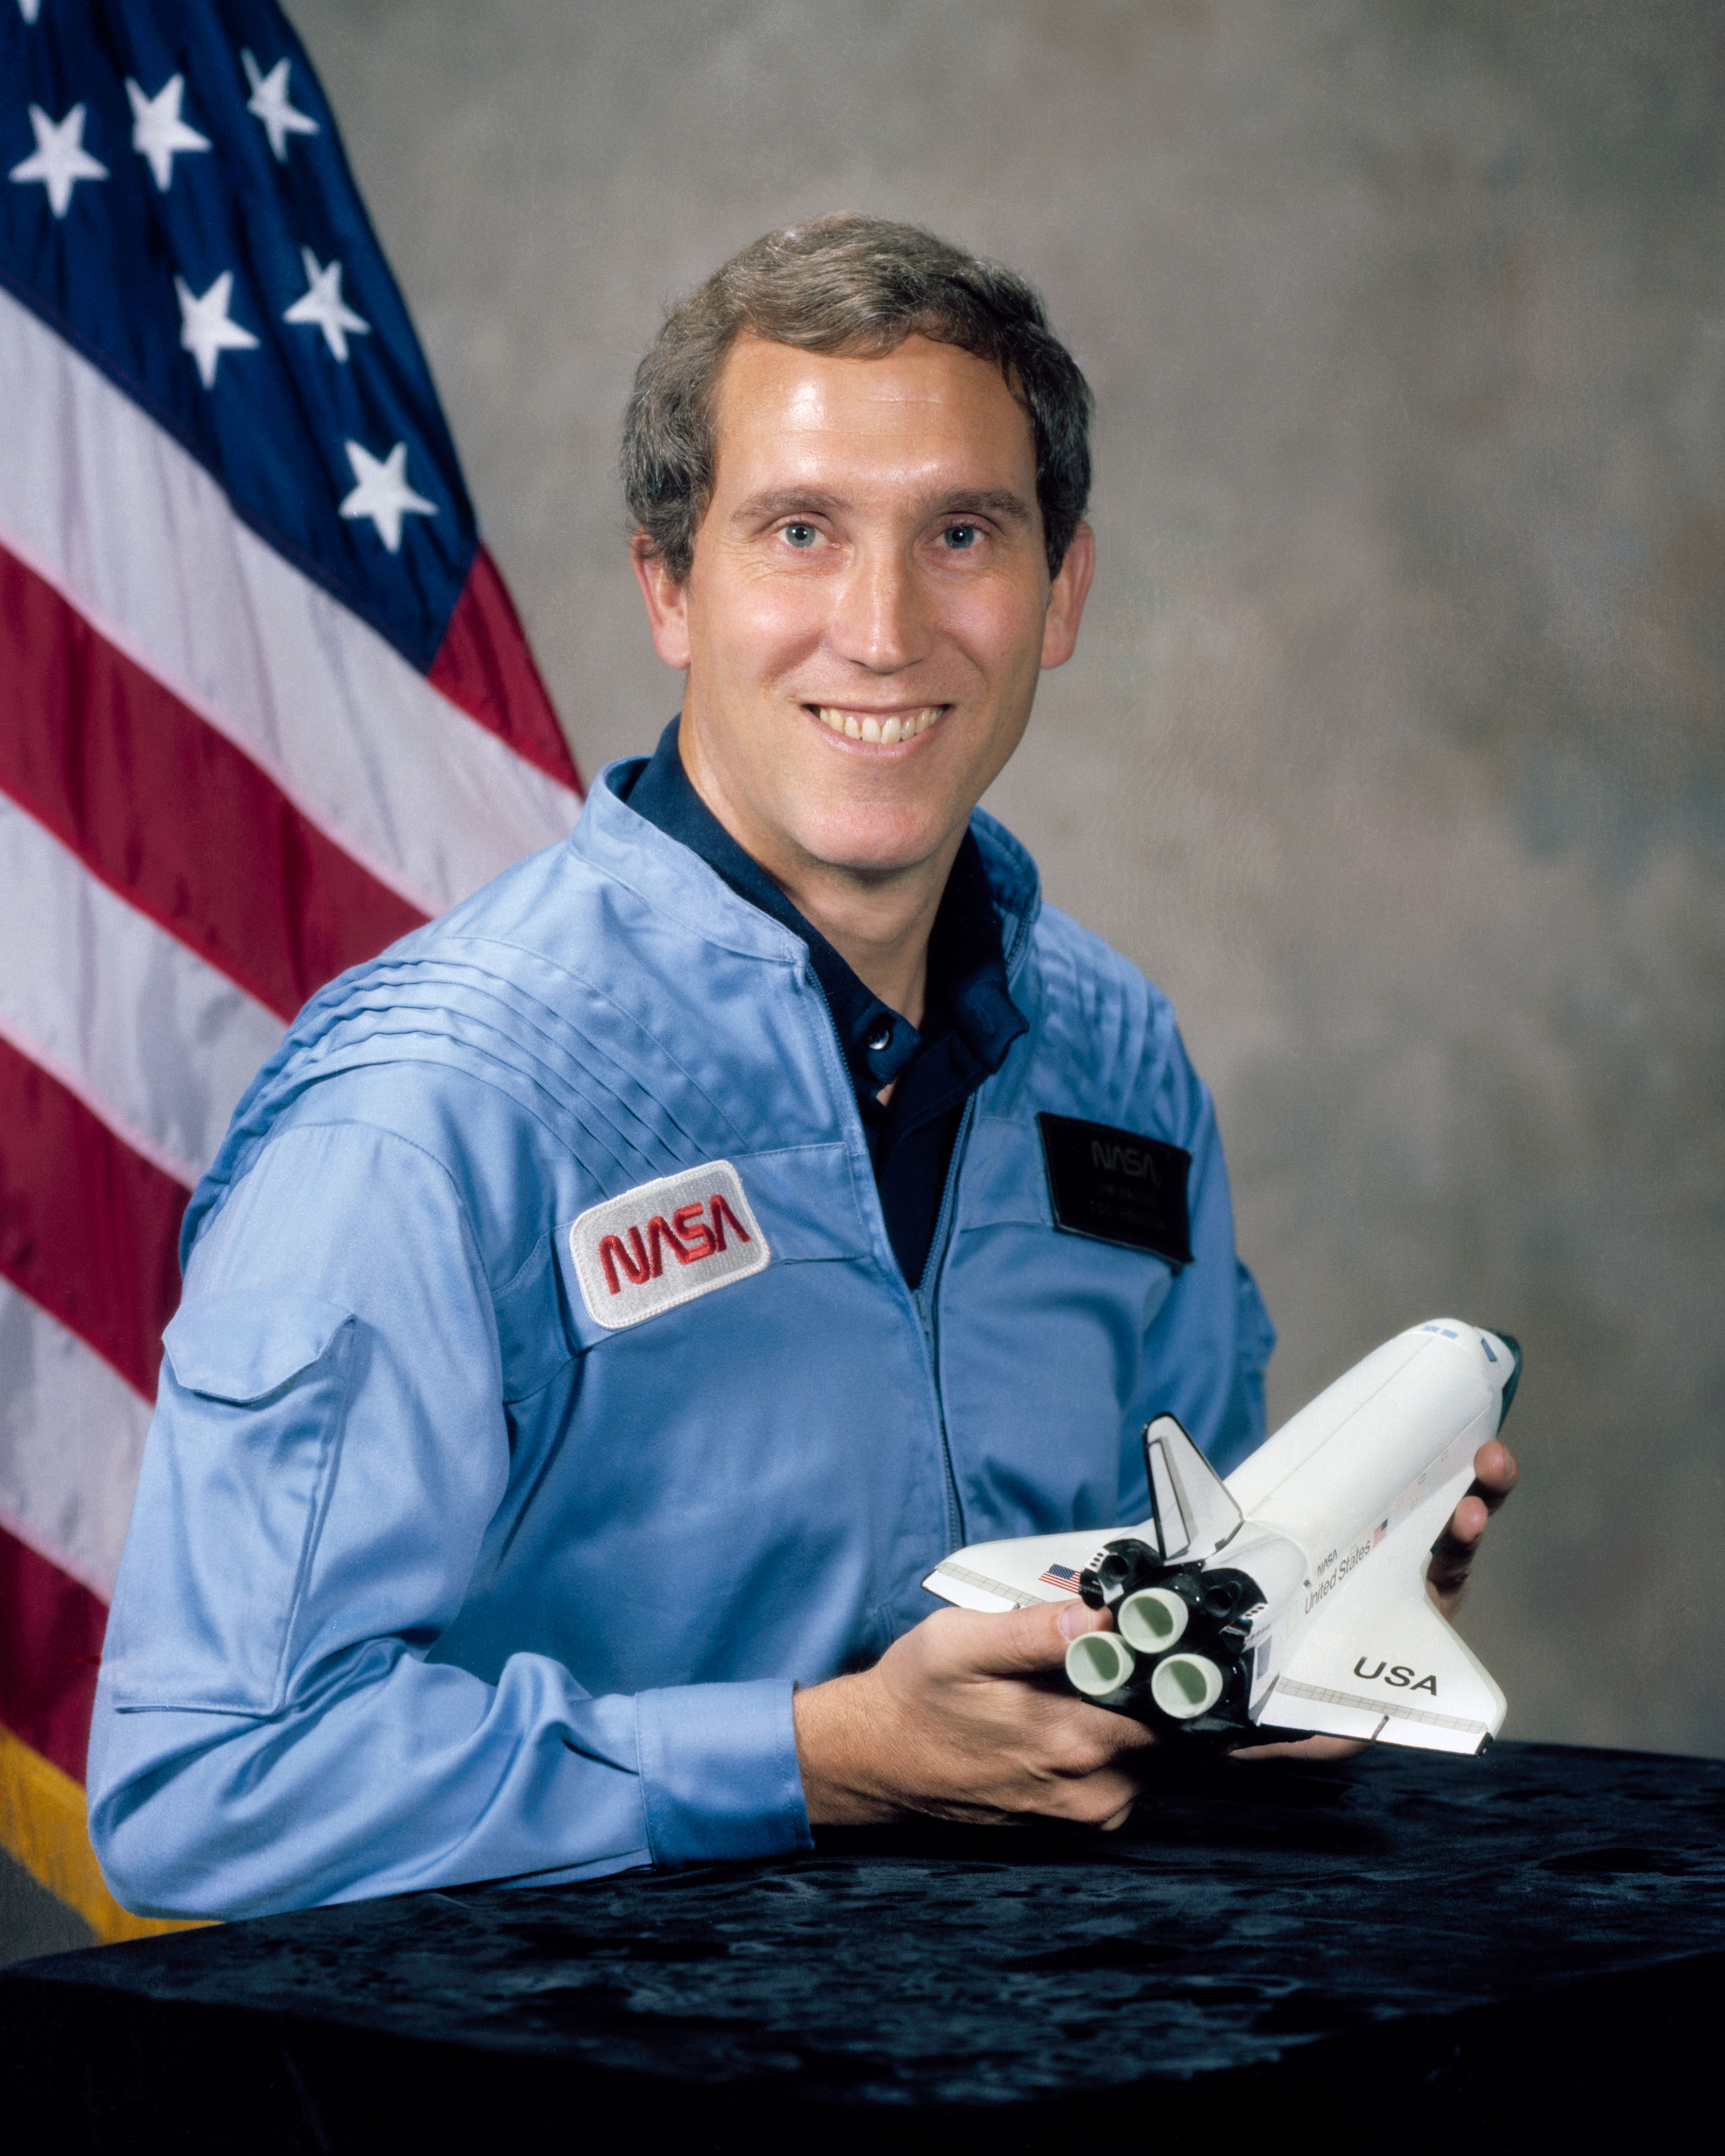 image of Michael J. Smith